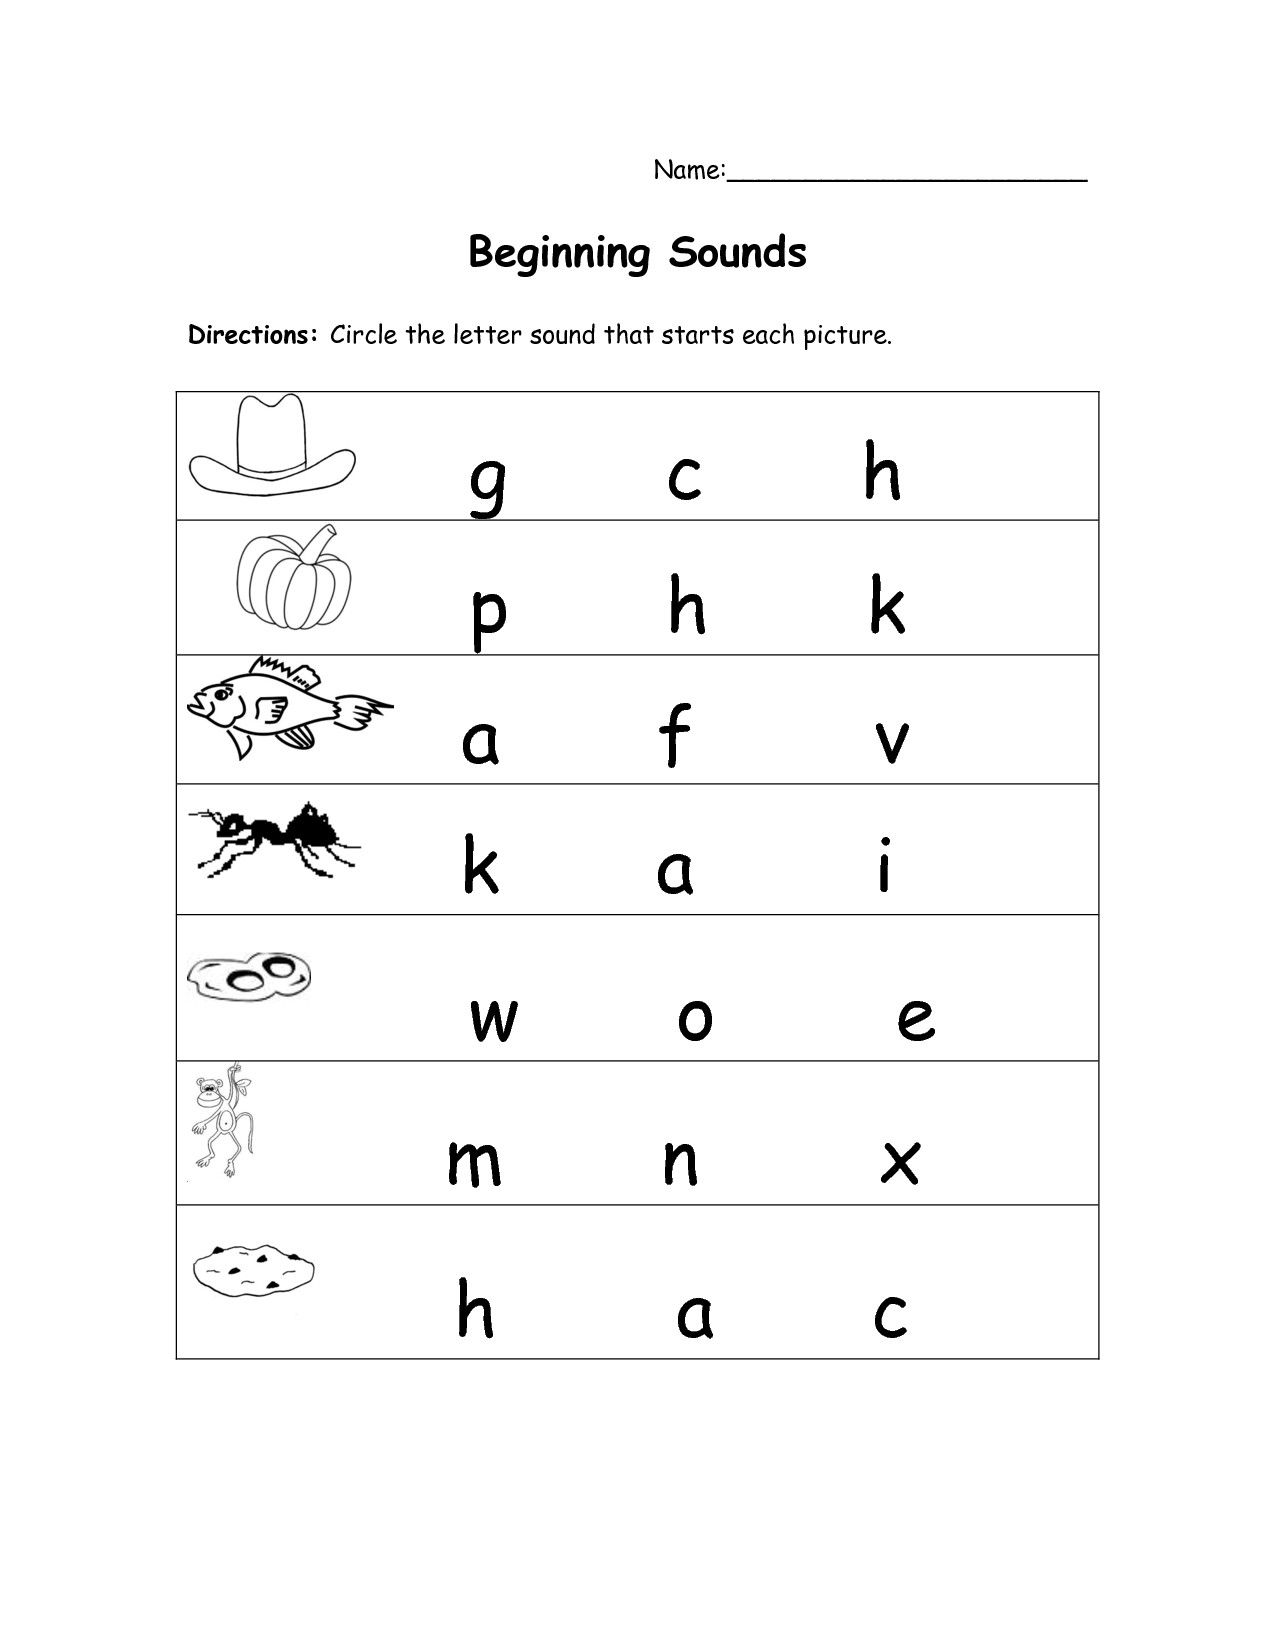 Teach Child How To Read Kindergarten Letter Sounds